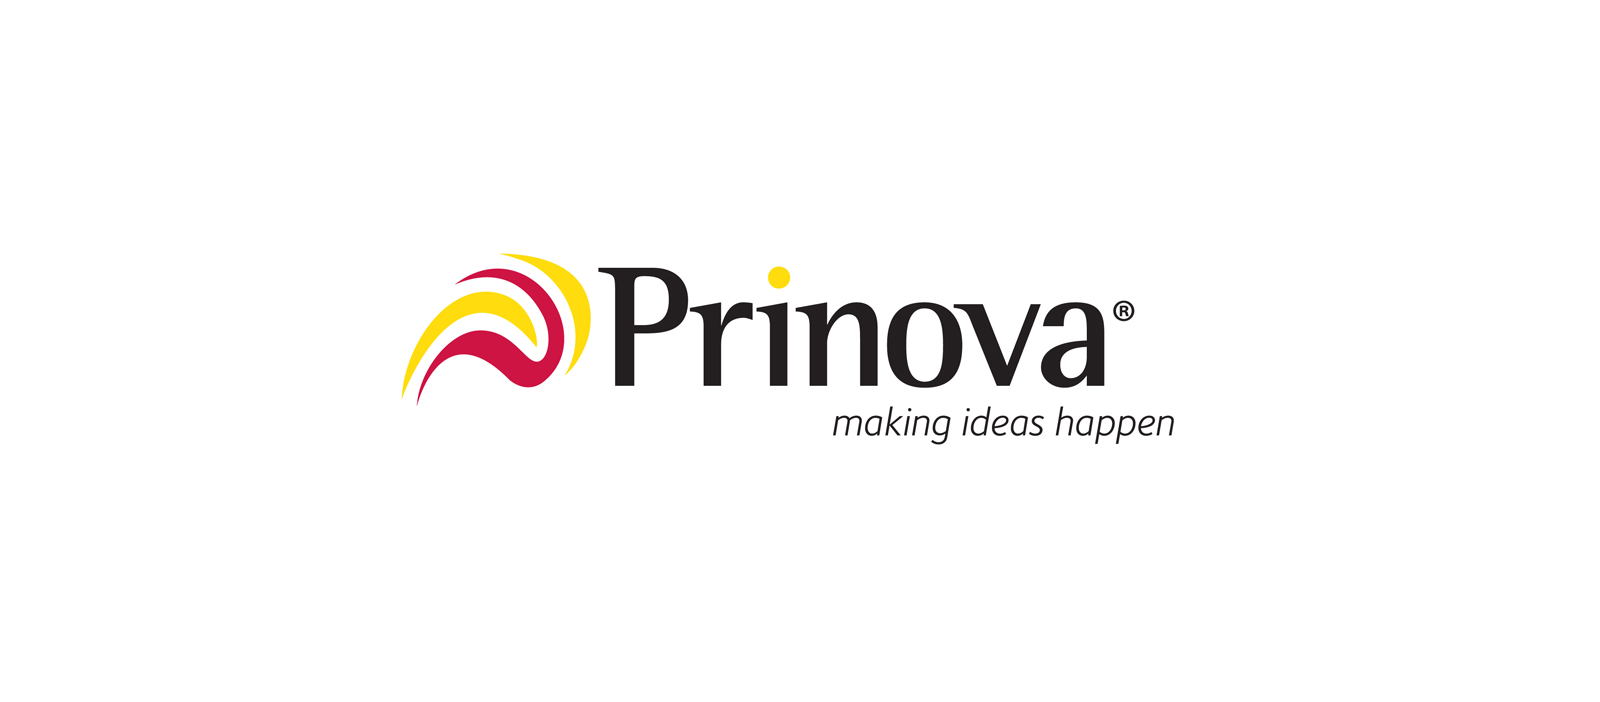 prinova: making ideas happen logo